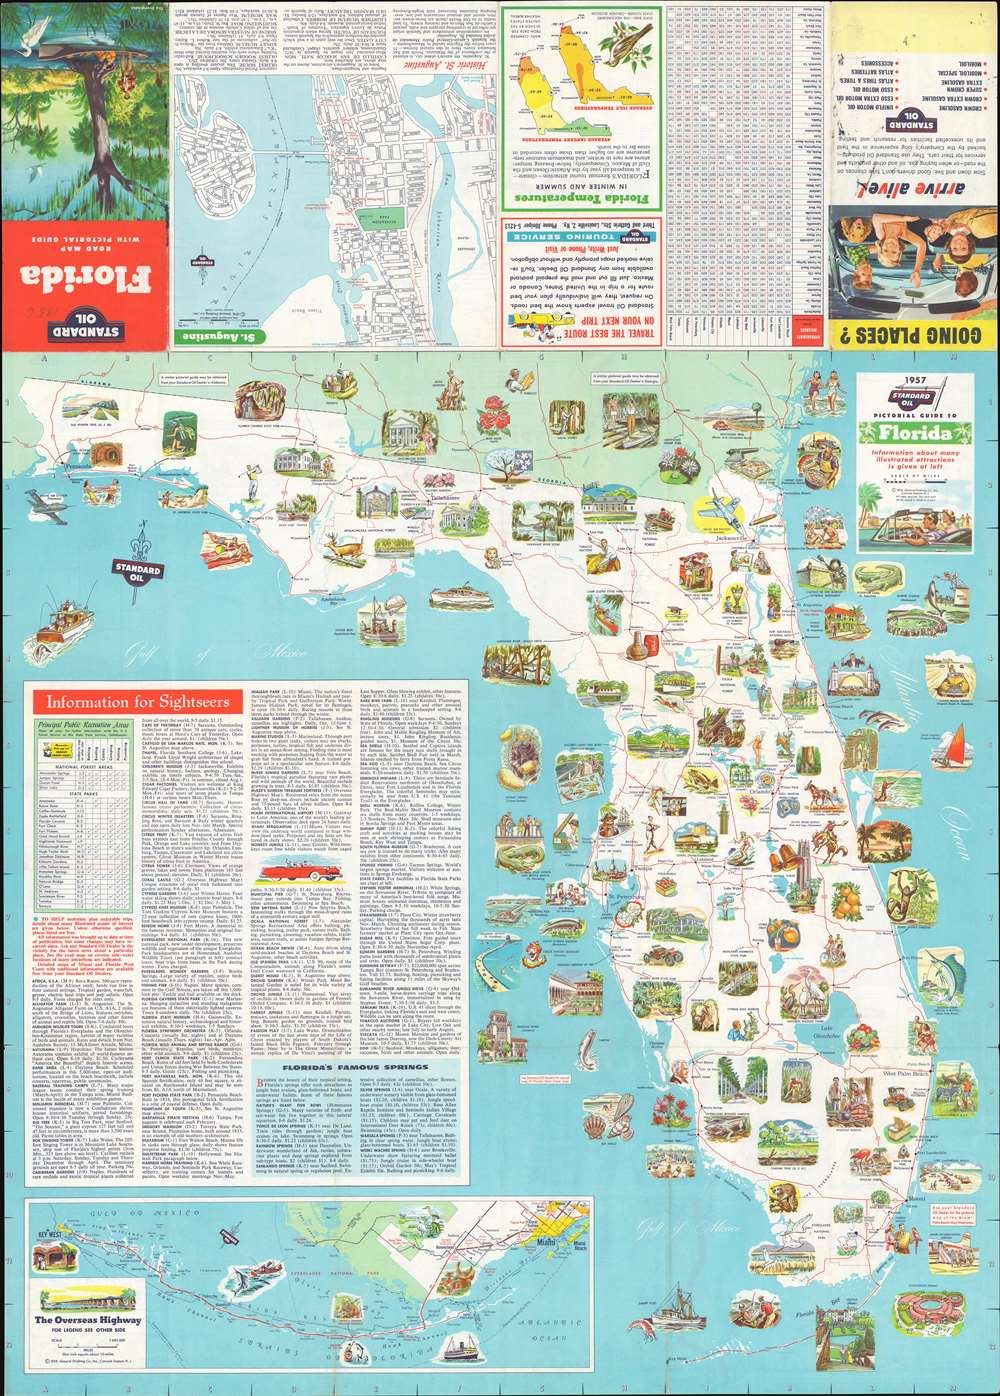 Florida. Road Map with Pictorial Guide. - Main View